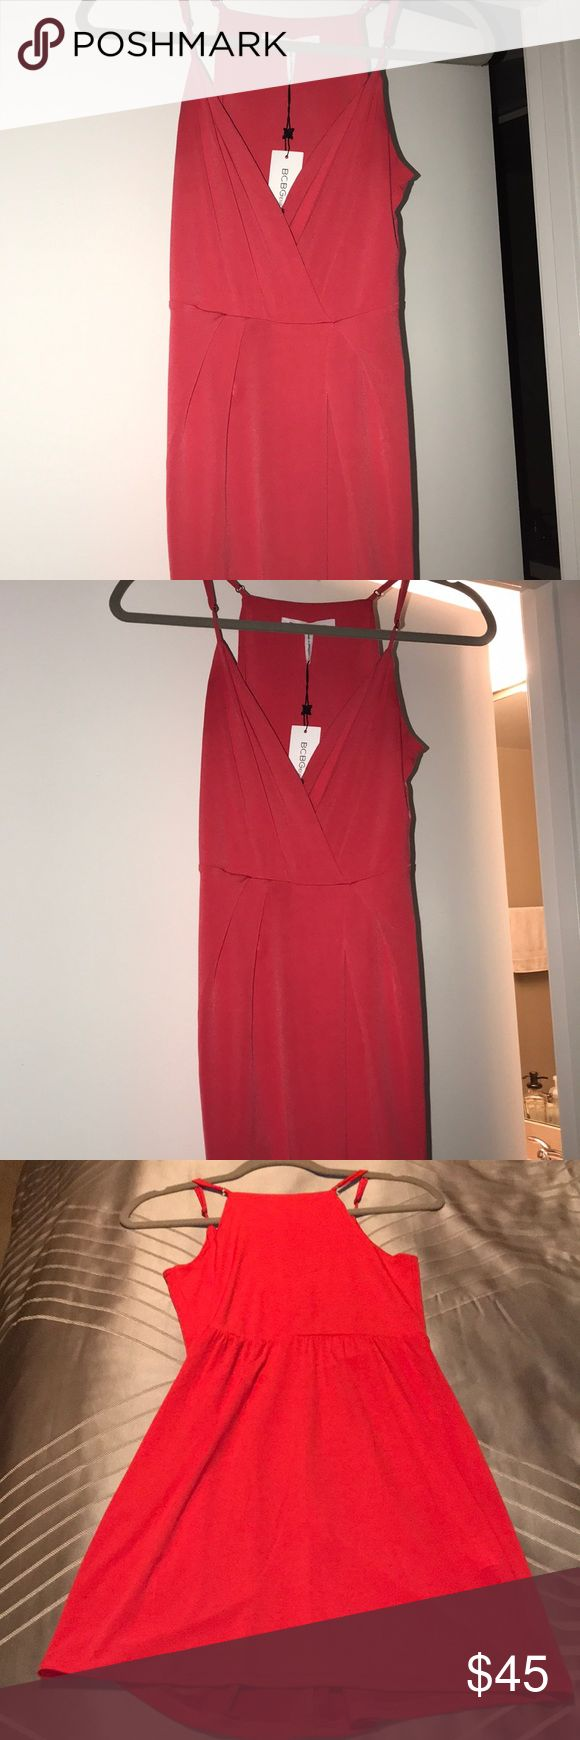 🆕 BCBG Generation mini Coral Dress ✨Brand New ✨with tags, bright coral! Super cute and flowy with adjustable straps and button on bust that can come unbuttoned if wanted. Mid thigh length, very comfy. Make an offer! BCBGeneration Dresses